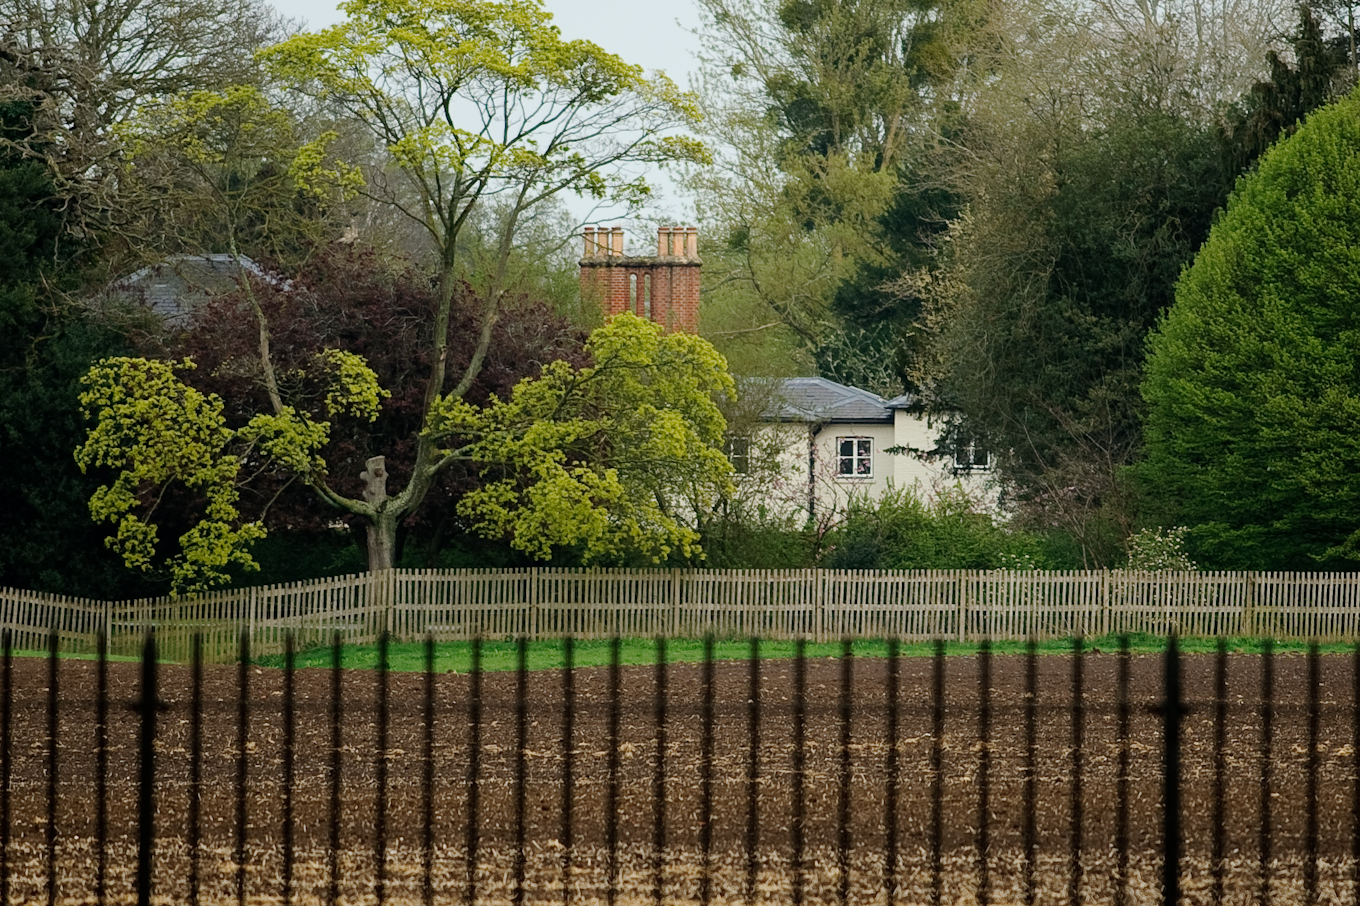 WINDSOR, ENGLAND - APRIL 10: A general view of Frogmore Cottage at Frogmore Cottage on April 10, 2019 in Windsor, England. The cottage is situated on the Frogmore Estate, itself part of Home Park, Windsor, in Berkshire. It is the new home of Prince Harry, Duke of Sussex and Meghan, Duchess of Sussex. (Photo by GOR/Getty Images)